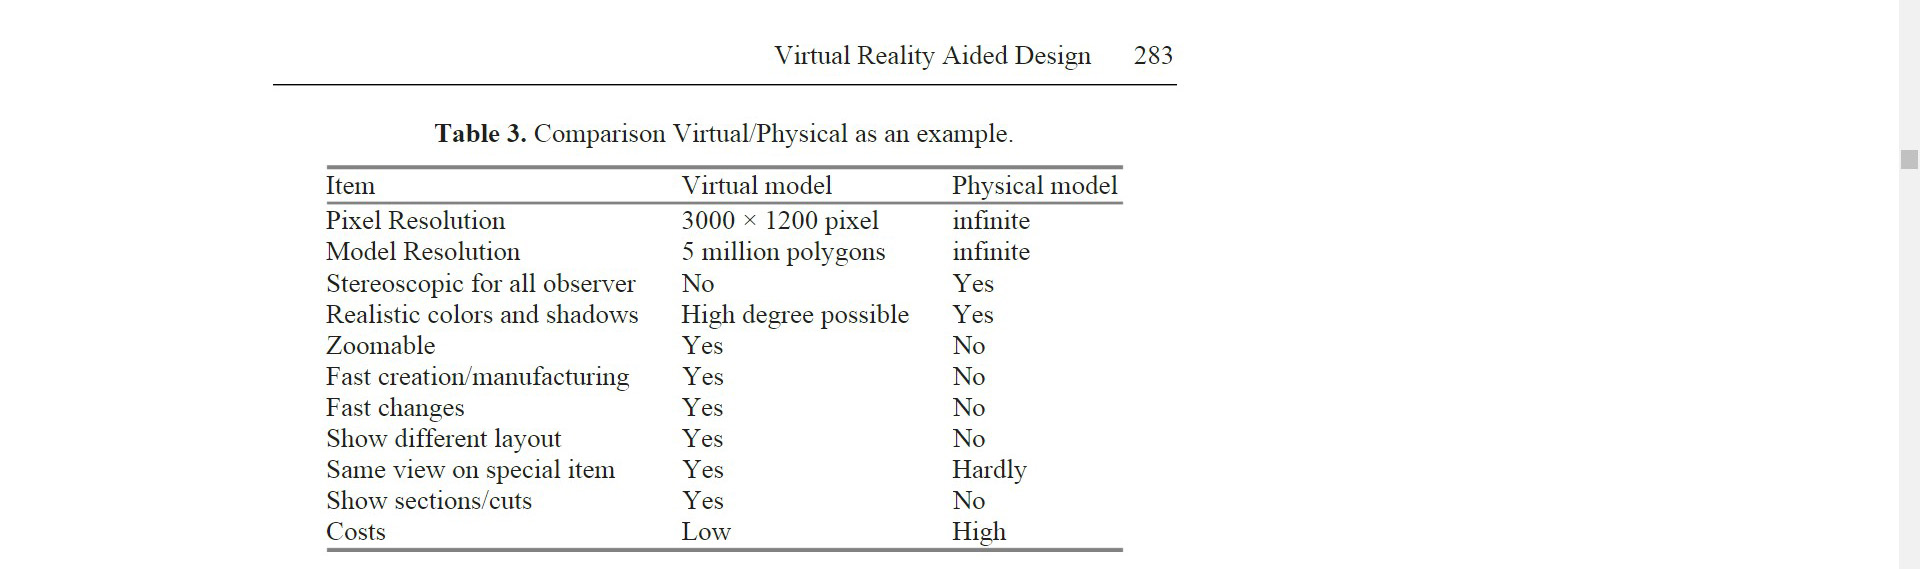 VR market research 02